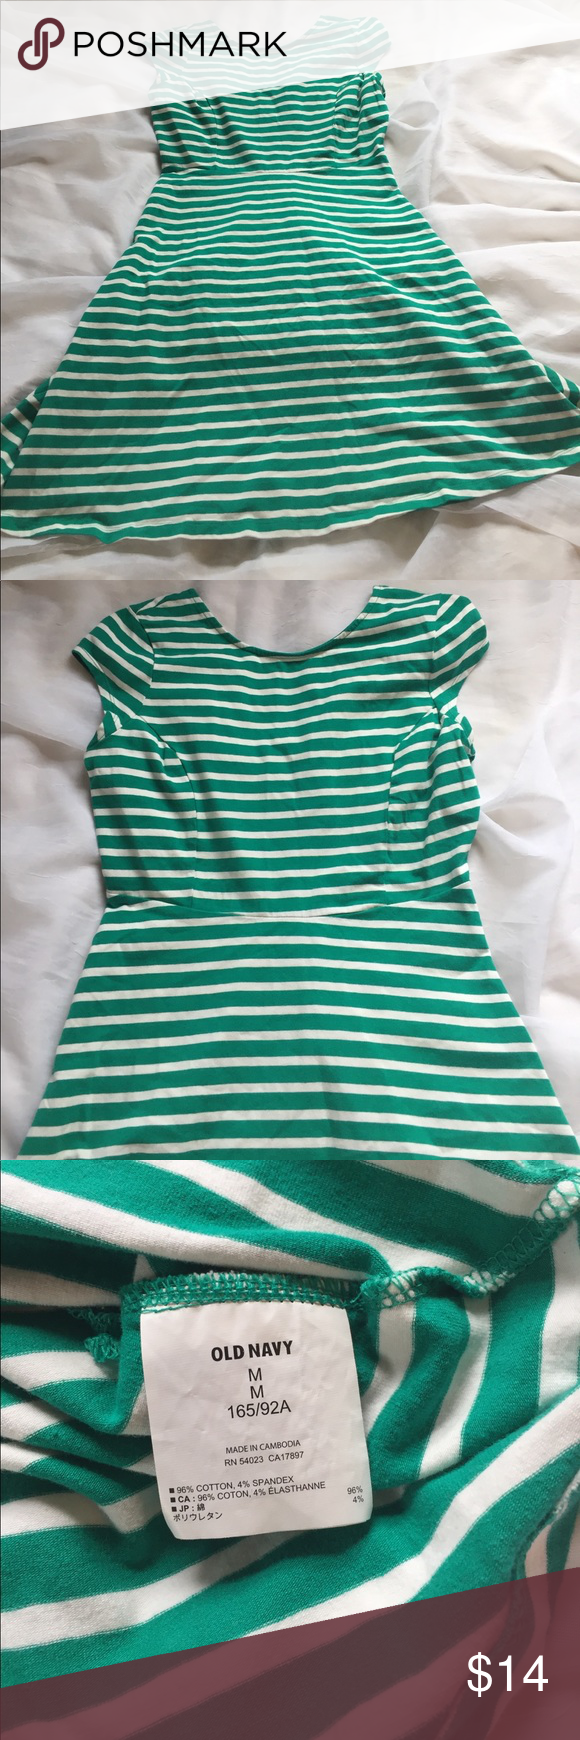 "Old Navy striped stretch dress, Ned Green and white striped dress by ON, with a stretch material and scoop back. Size medium, with 35"" bust, 29"" waist, and 35"" length. 🦊 I do not model or trade. Please use measurements provided and ask any questions prior to purchase. My goal is a five star happy customer! 😊 Old Navy Dresses Mini"